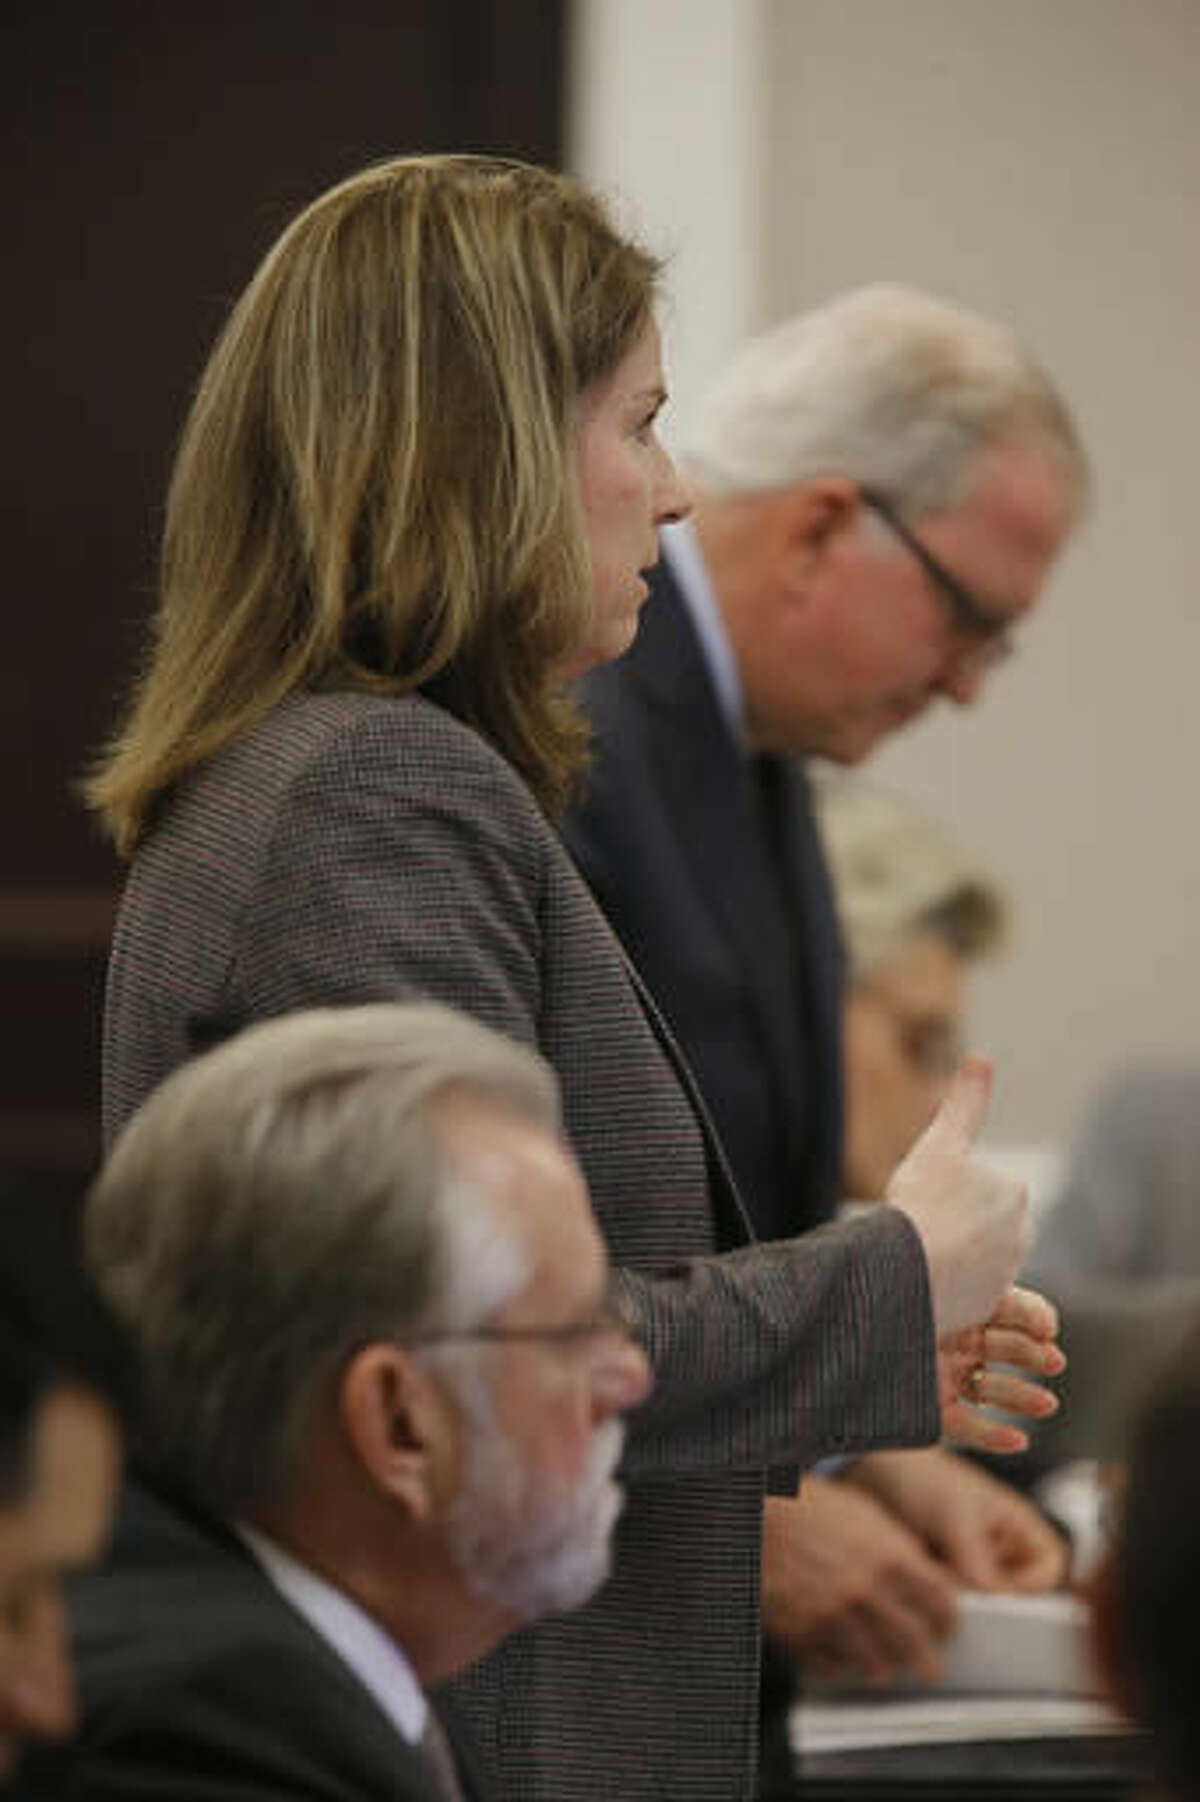 Ninth Circuit Solicitor Scarlett Wilson, speaks to Judge Clifton Newman during the murder tidal of former North Charleston Police Officer Michael Slager, Monday, Nov. 7, 2016, in Charleston, S.C. Slager is on trial facing a murder charge in the shooting death of Walter Scott, who was gunned down after he fled from a traffic stop. (Grace Beahm/Post and Courier via AP, Pool)